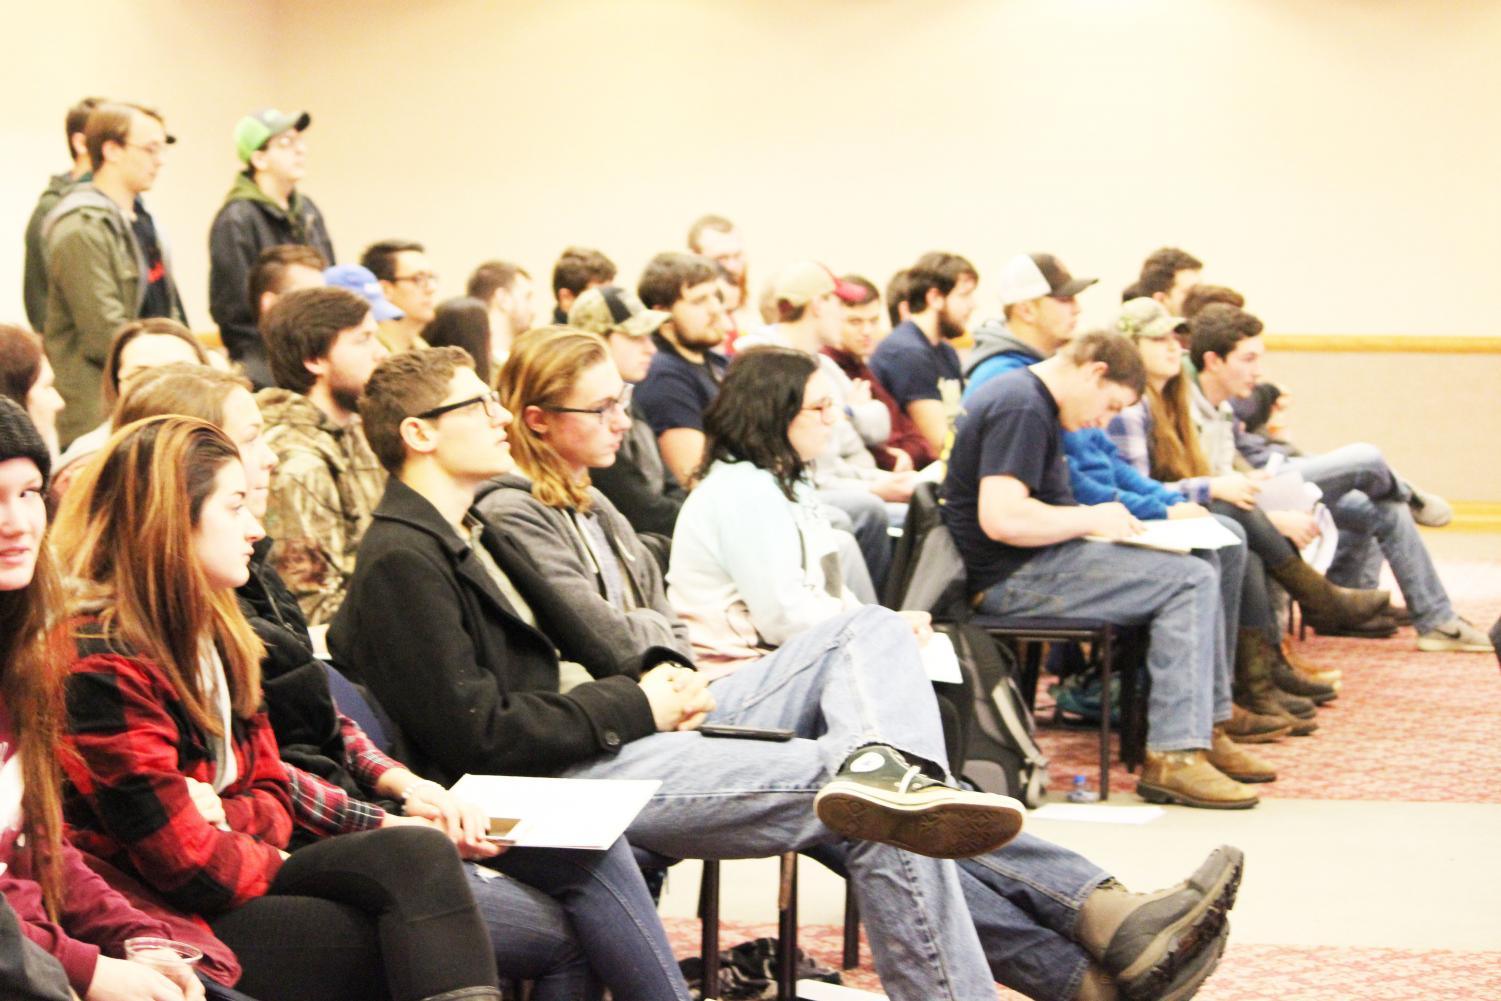 About 50 students attended a Feb. 11 student government meeting in the Student Union's Cambria Room. Emergency allocation guidleines were amended during the meeting, despite concerns from those in attendance.